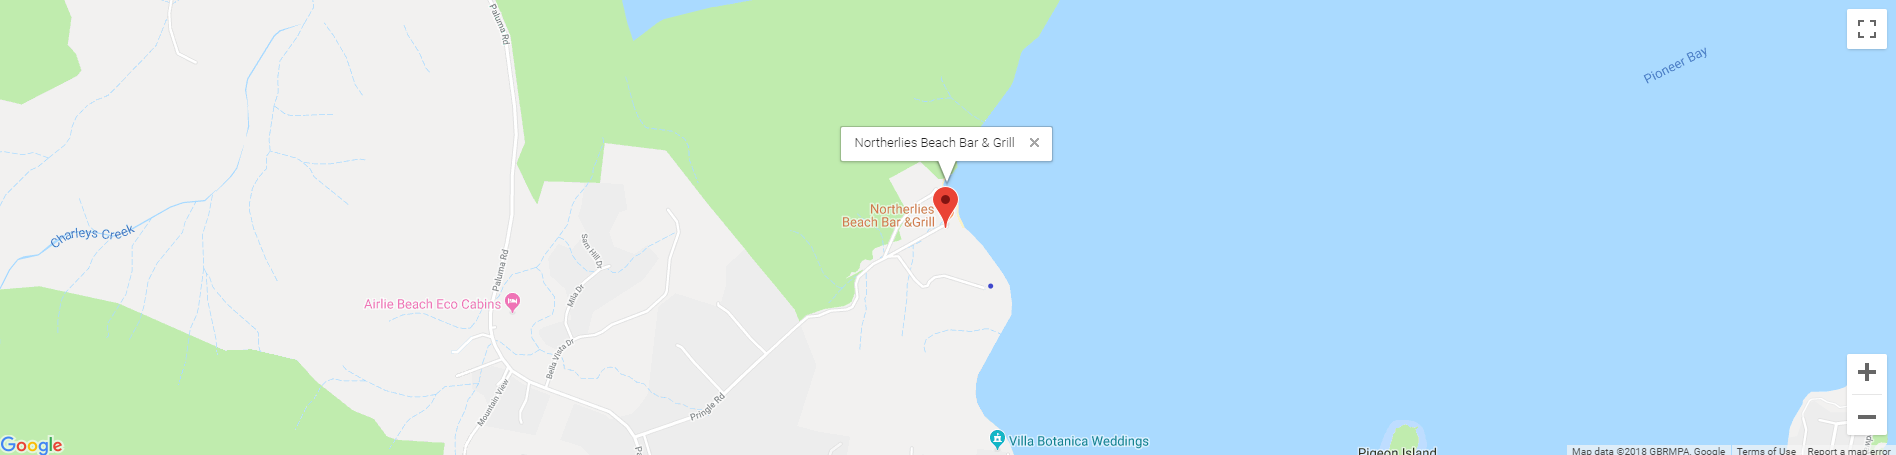 Northerlies Map